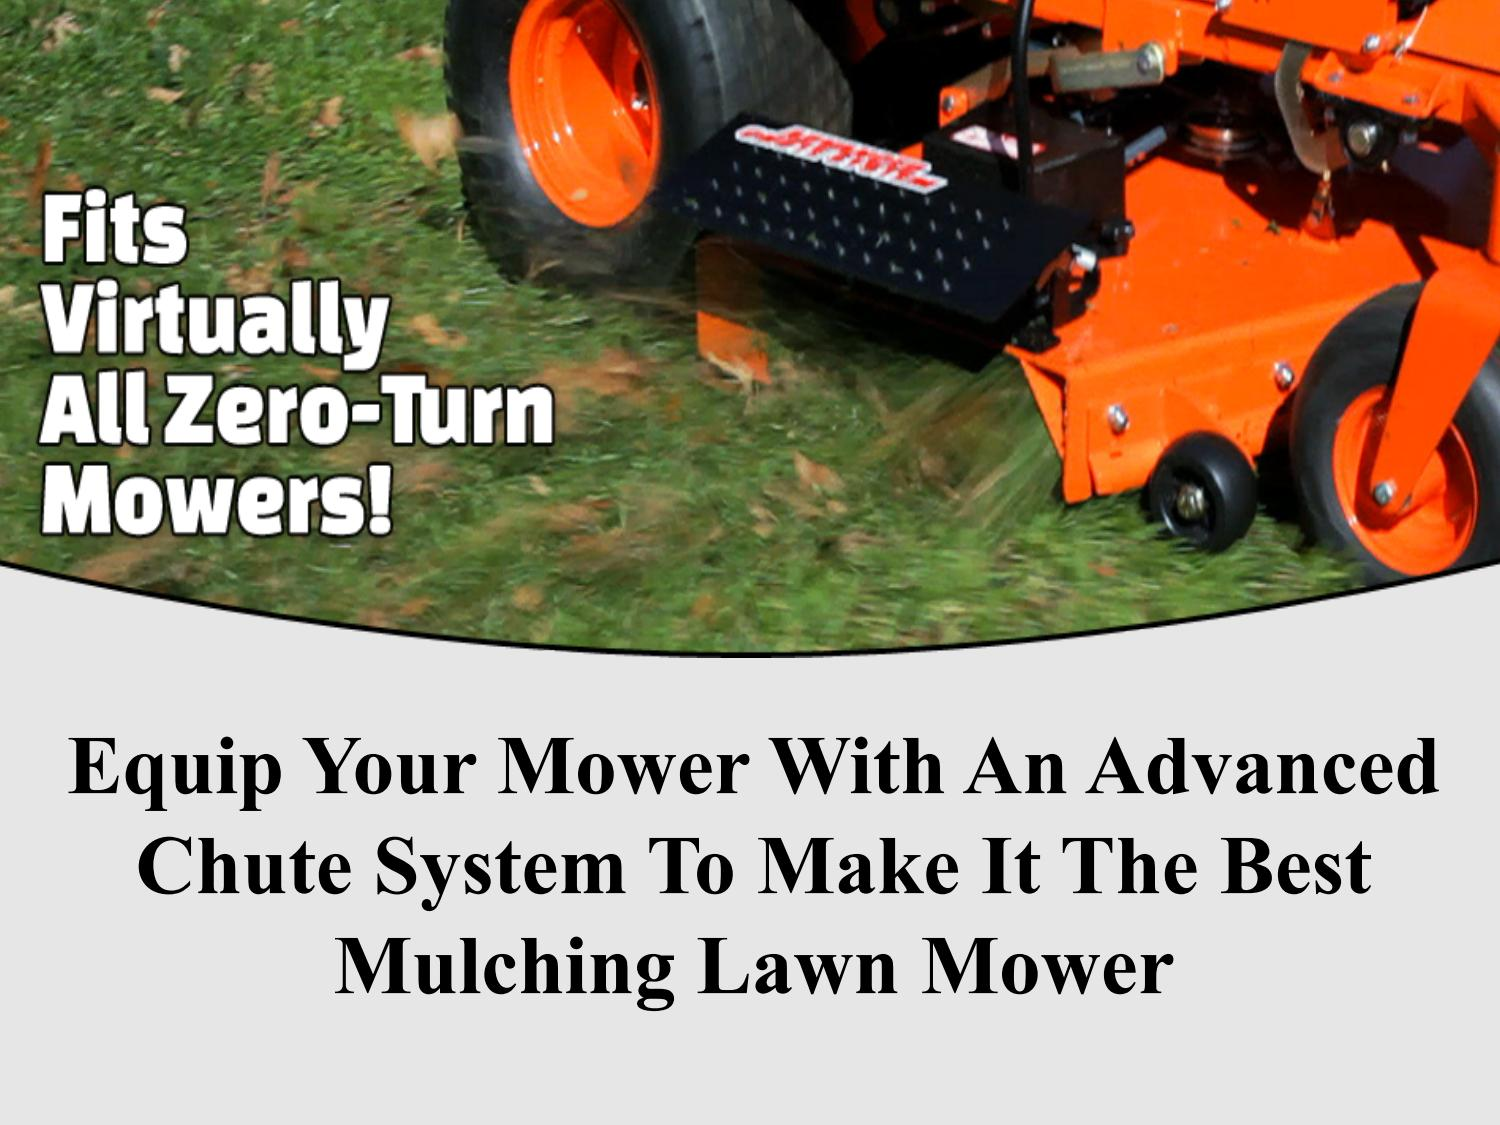 Equip Your Mower With An Advanced Chute System To Make It